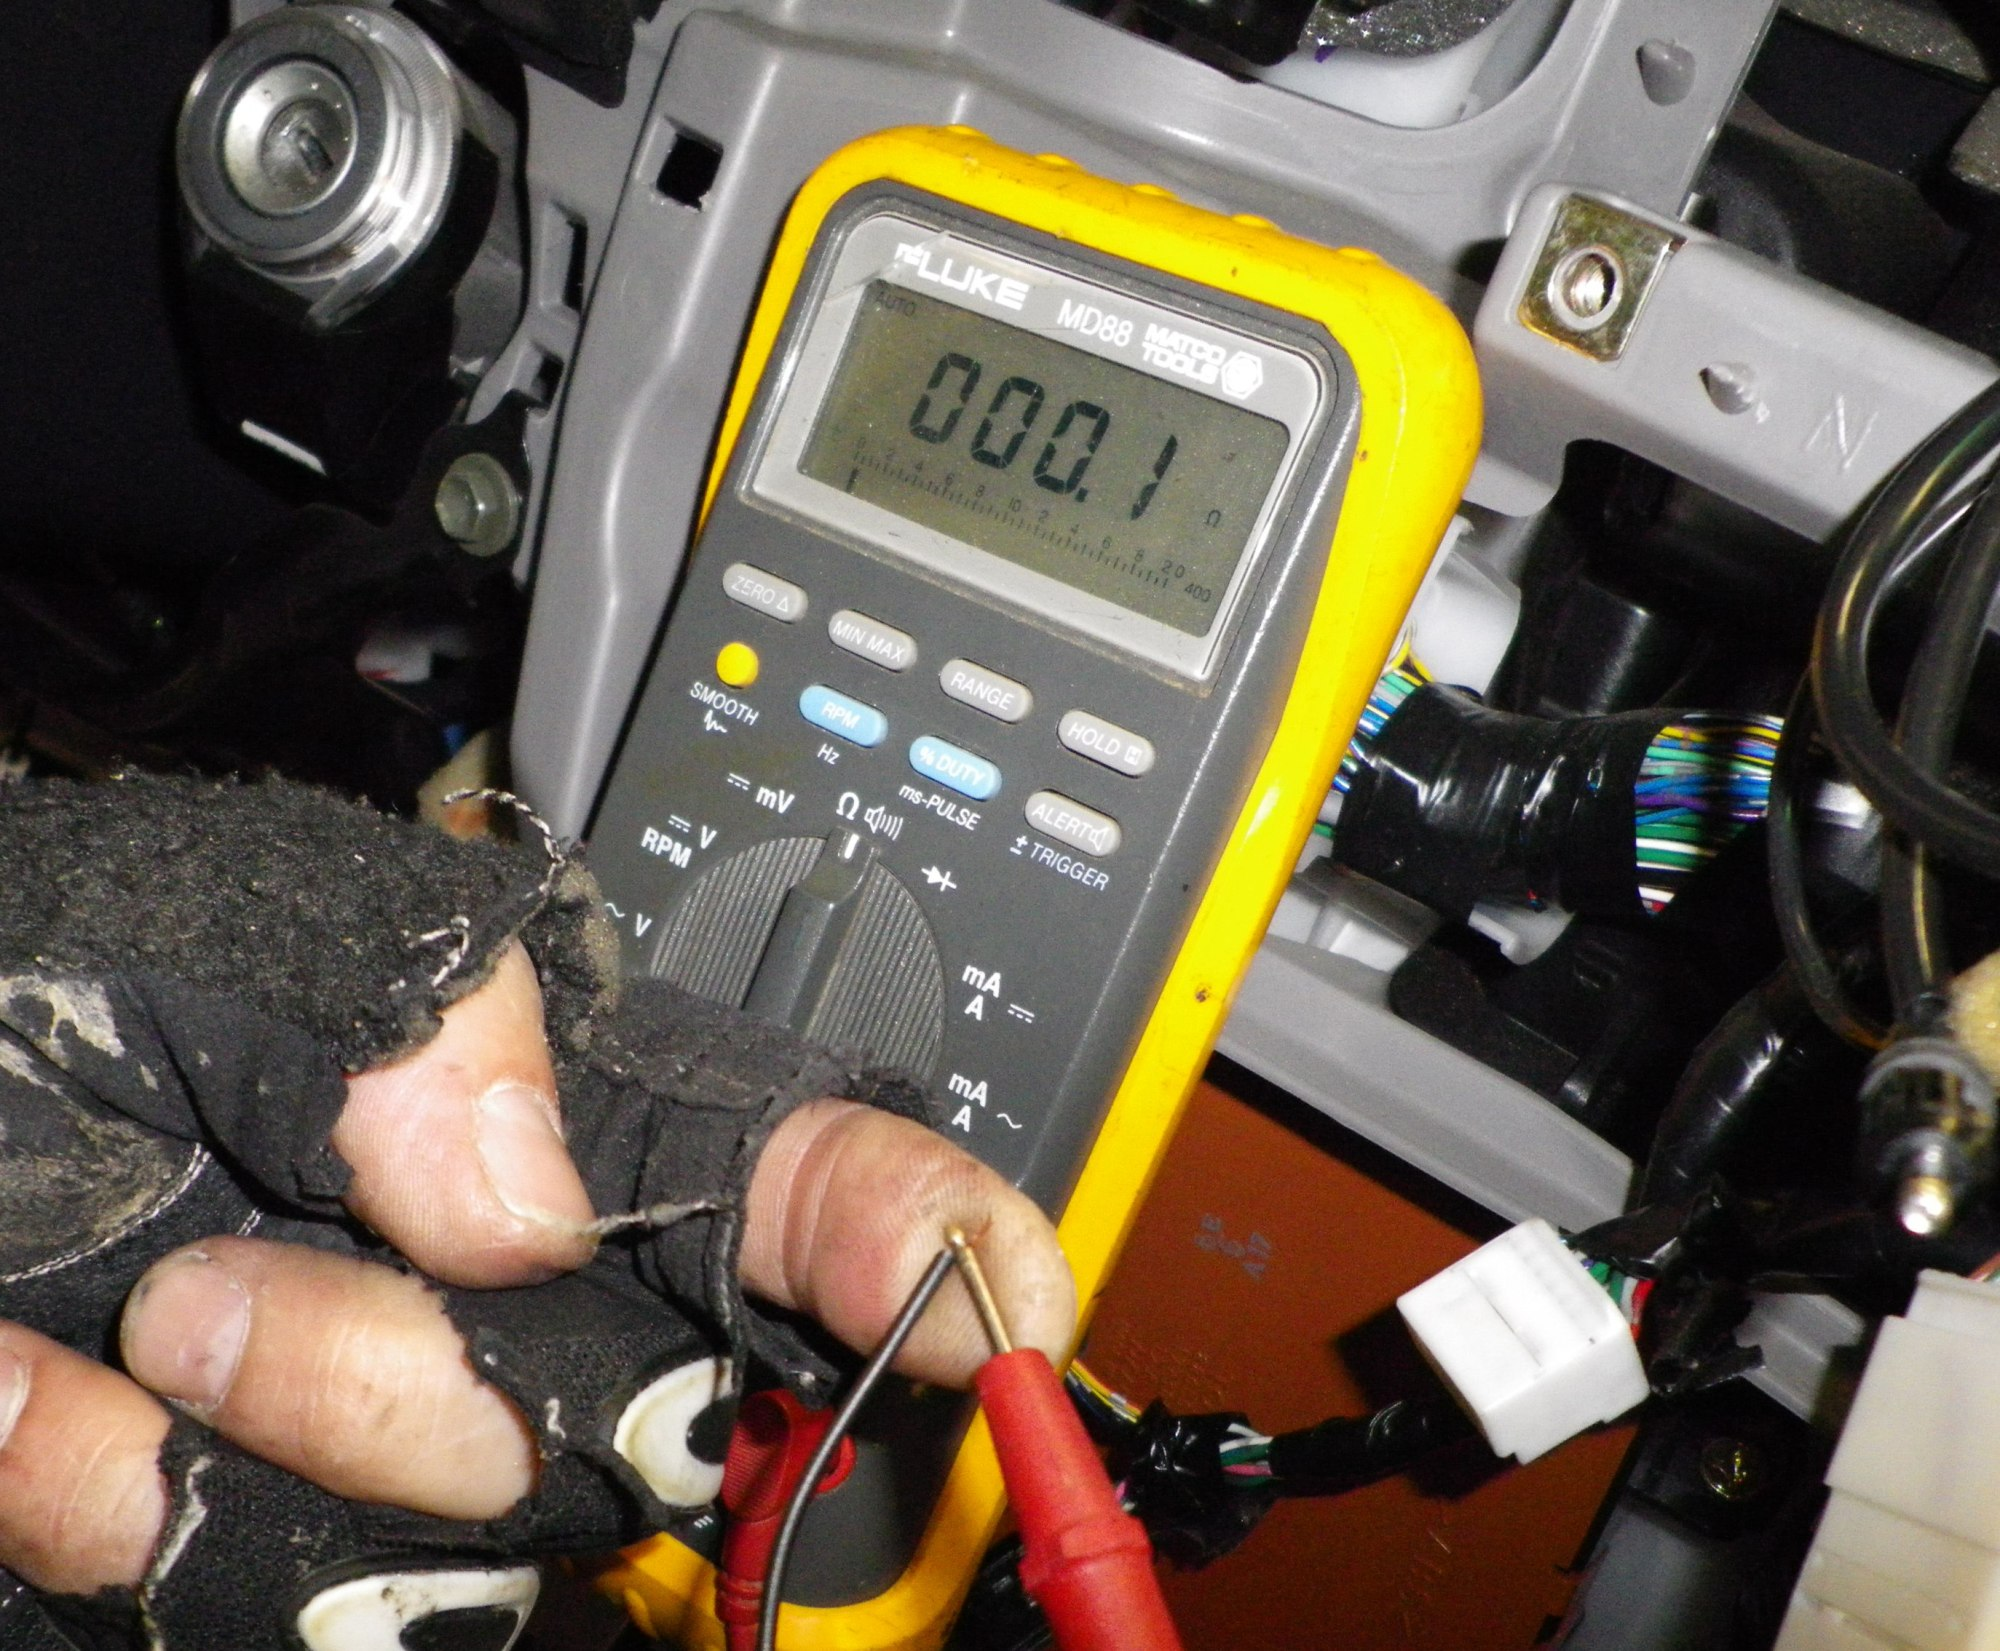 hight resolution of stock stereo harness cut no problem car stereo reviews news test wiring harness with multimeter test wiring harness with multimeter